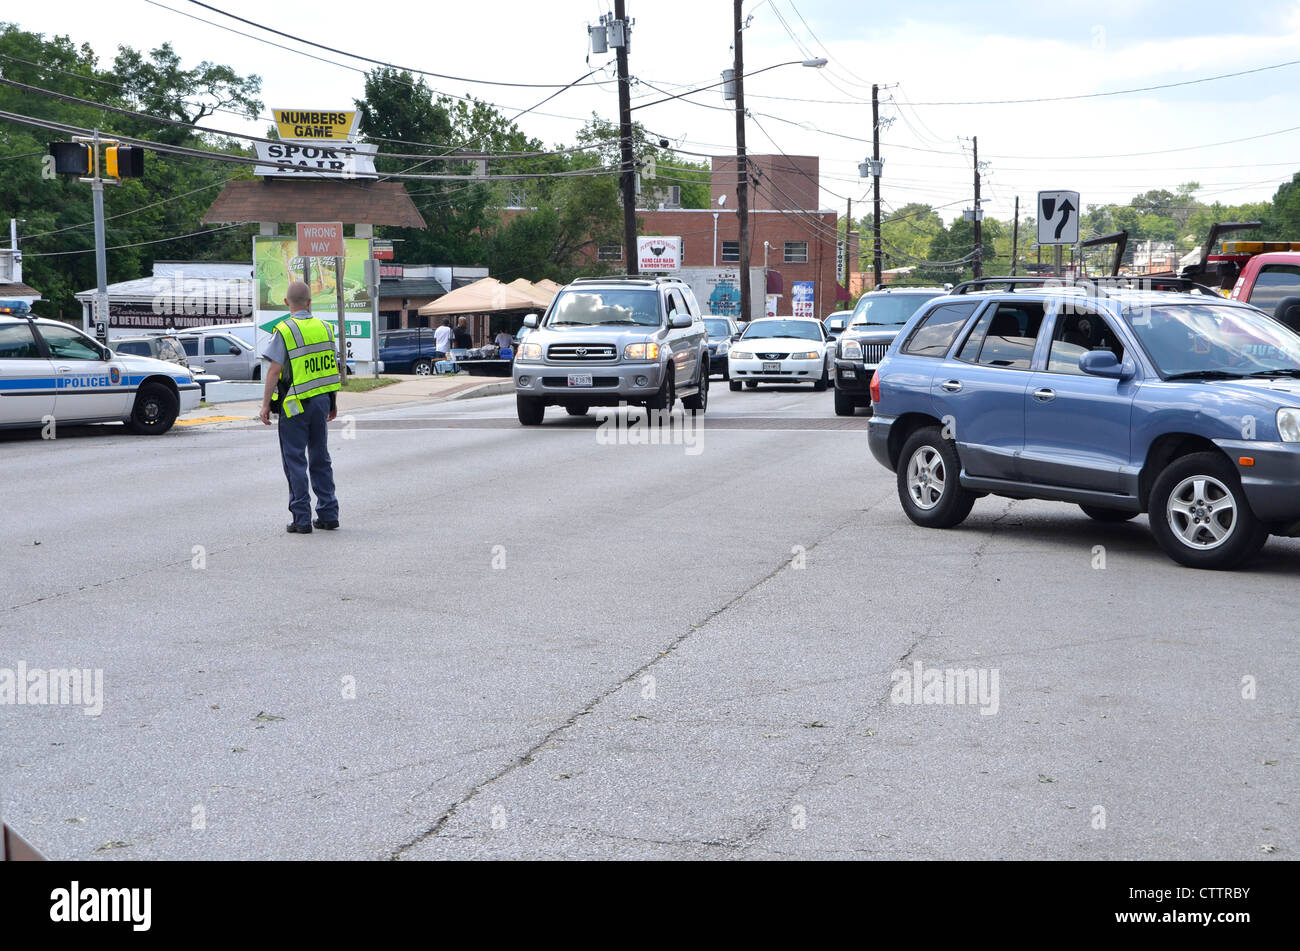 police directing traffic after a power failure knocked out the traffic lights at an intersection in Bladensburg, - Stock Image